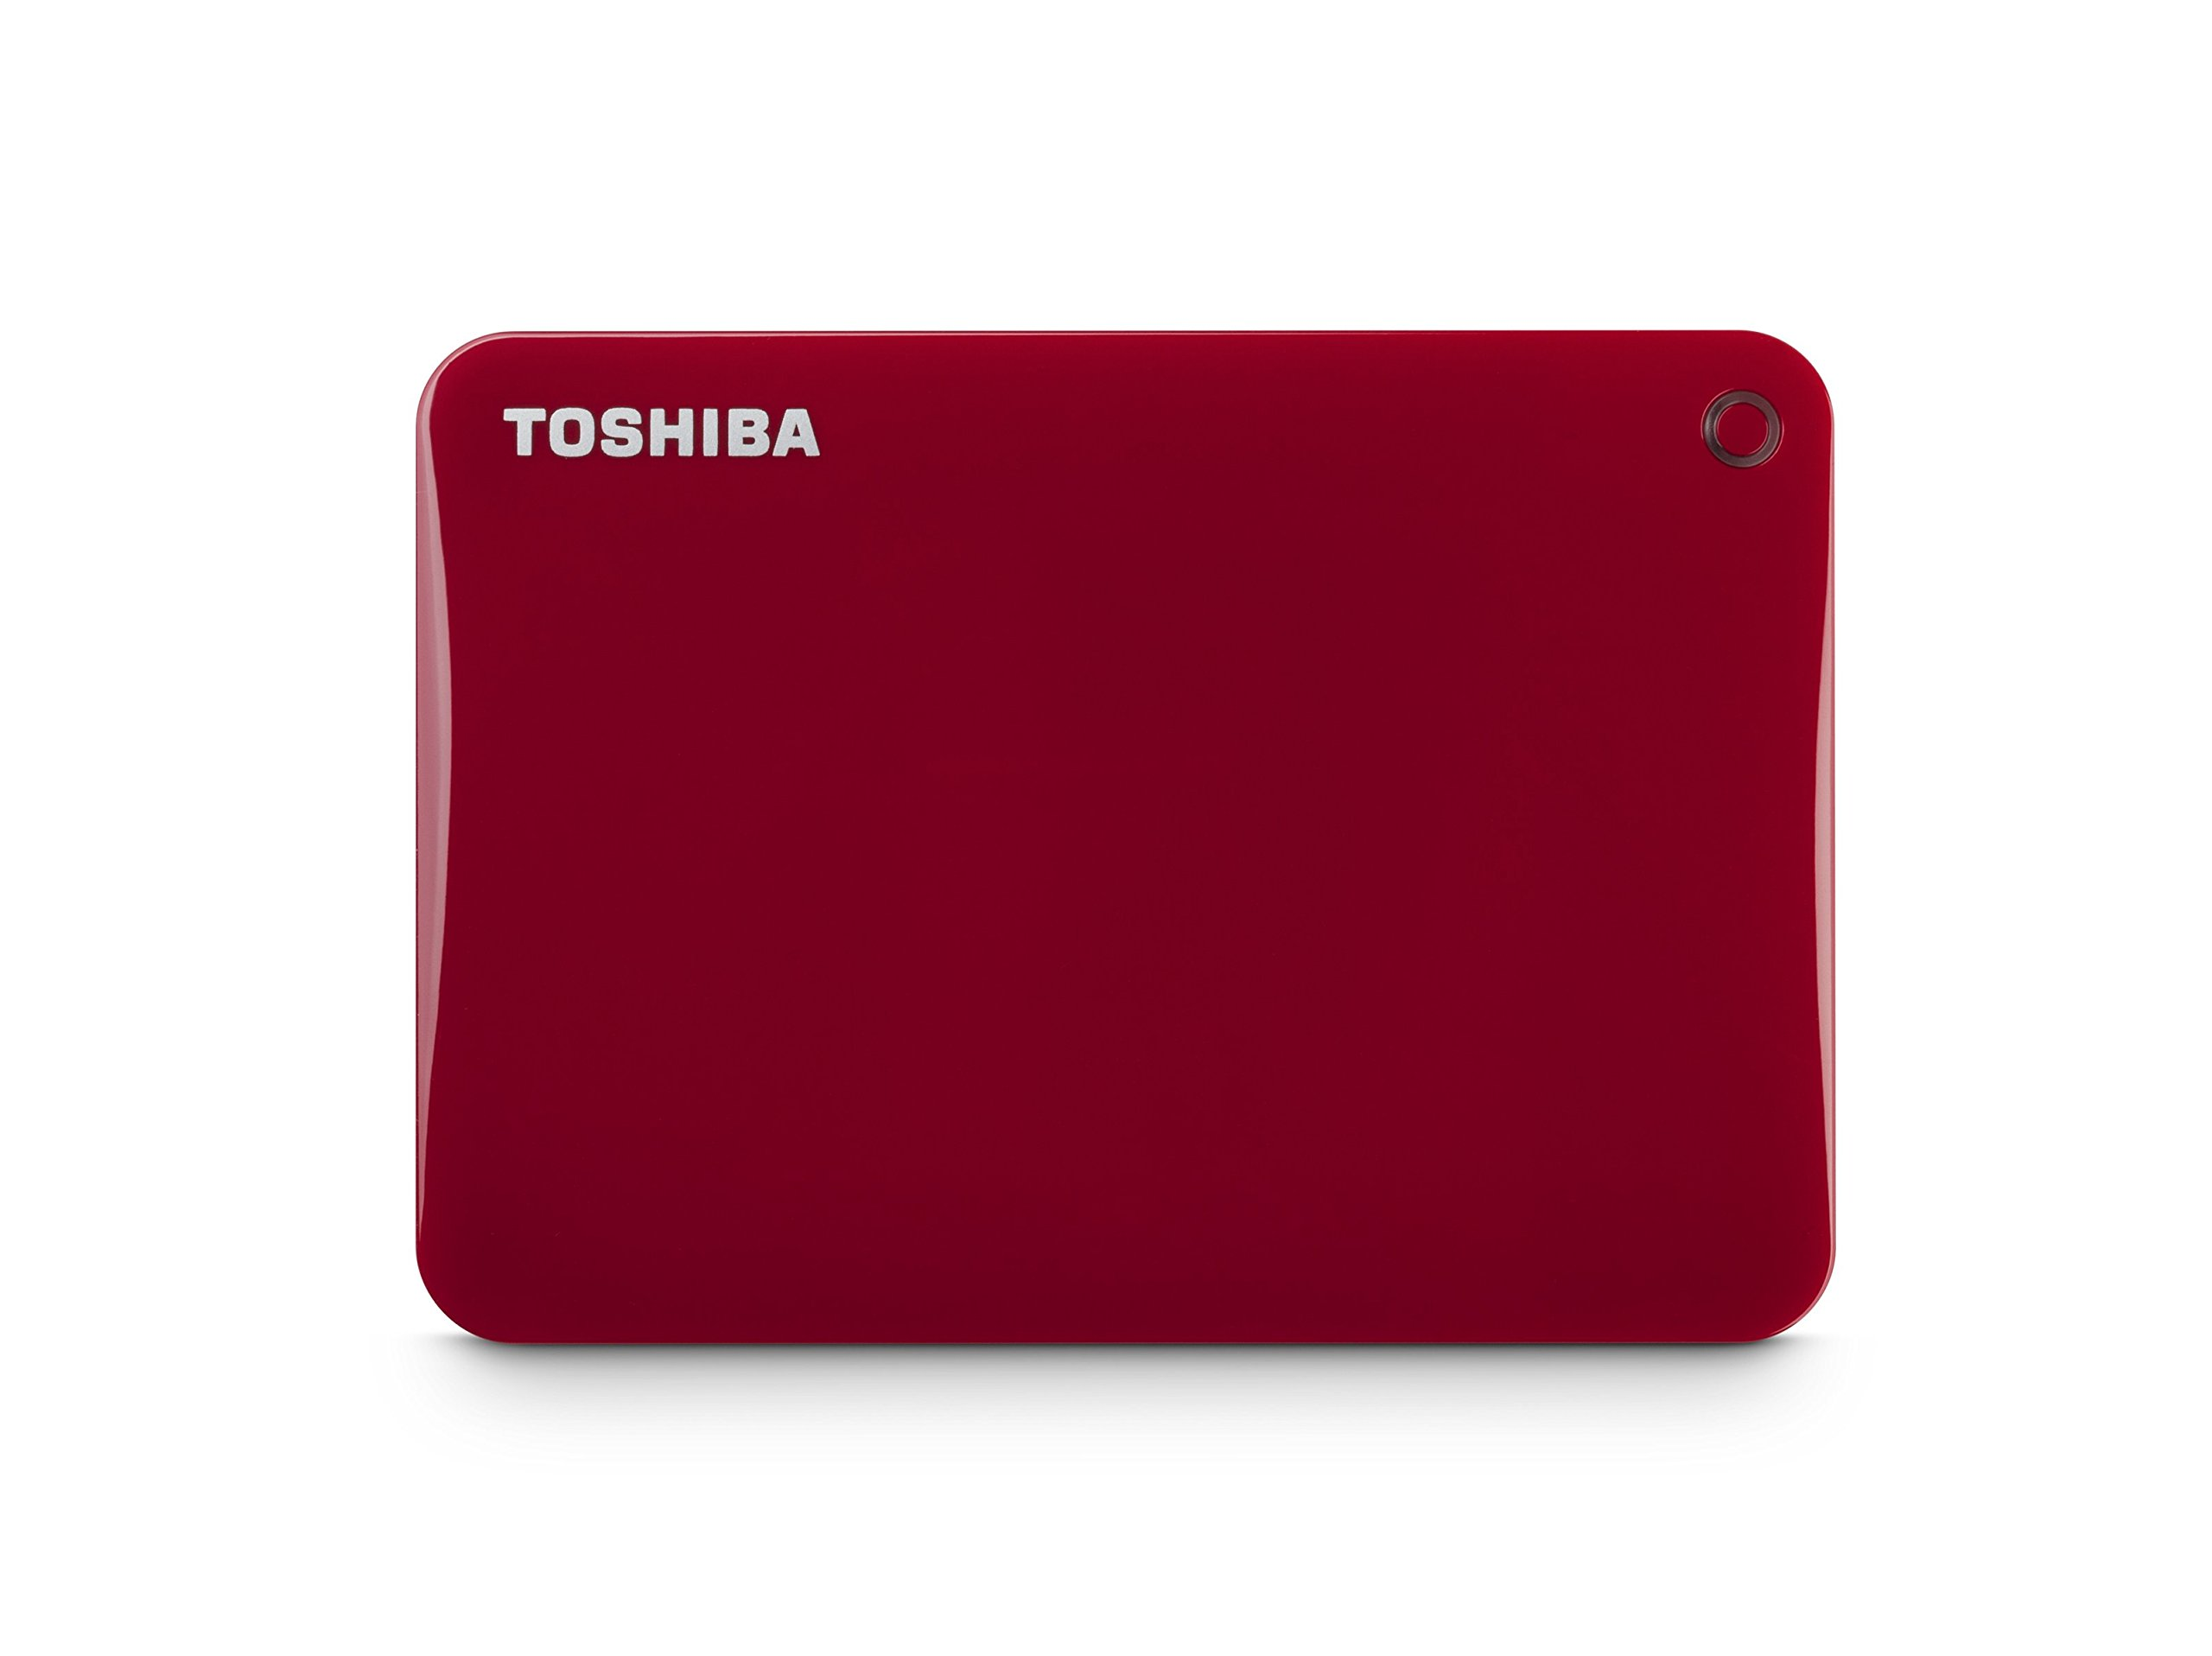 Toshiba Canvio Connect II 3TB Portable Hard Drive, Red (HDTC830XR3C1) by Toshiba